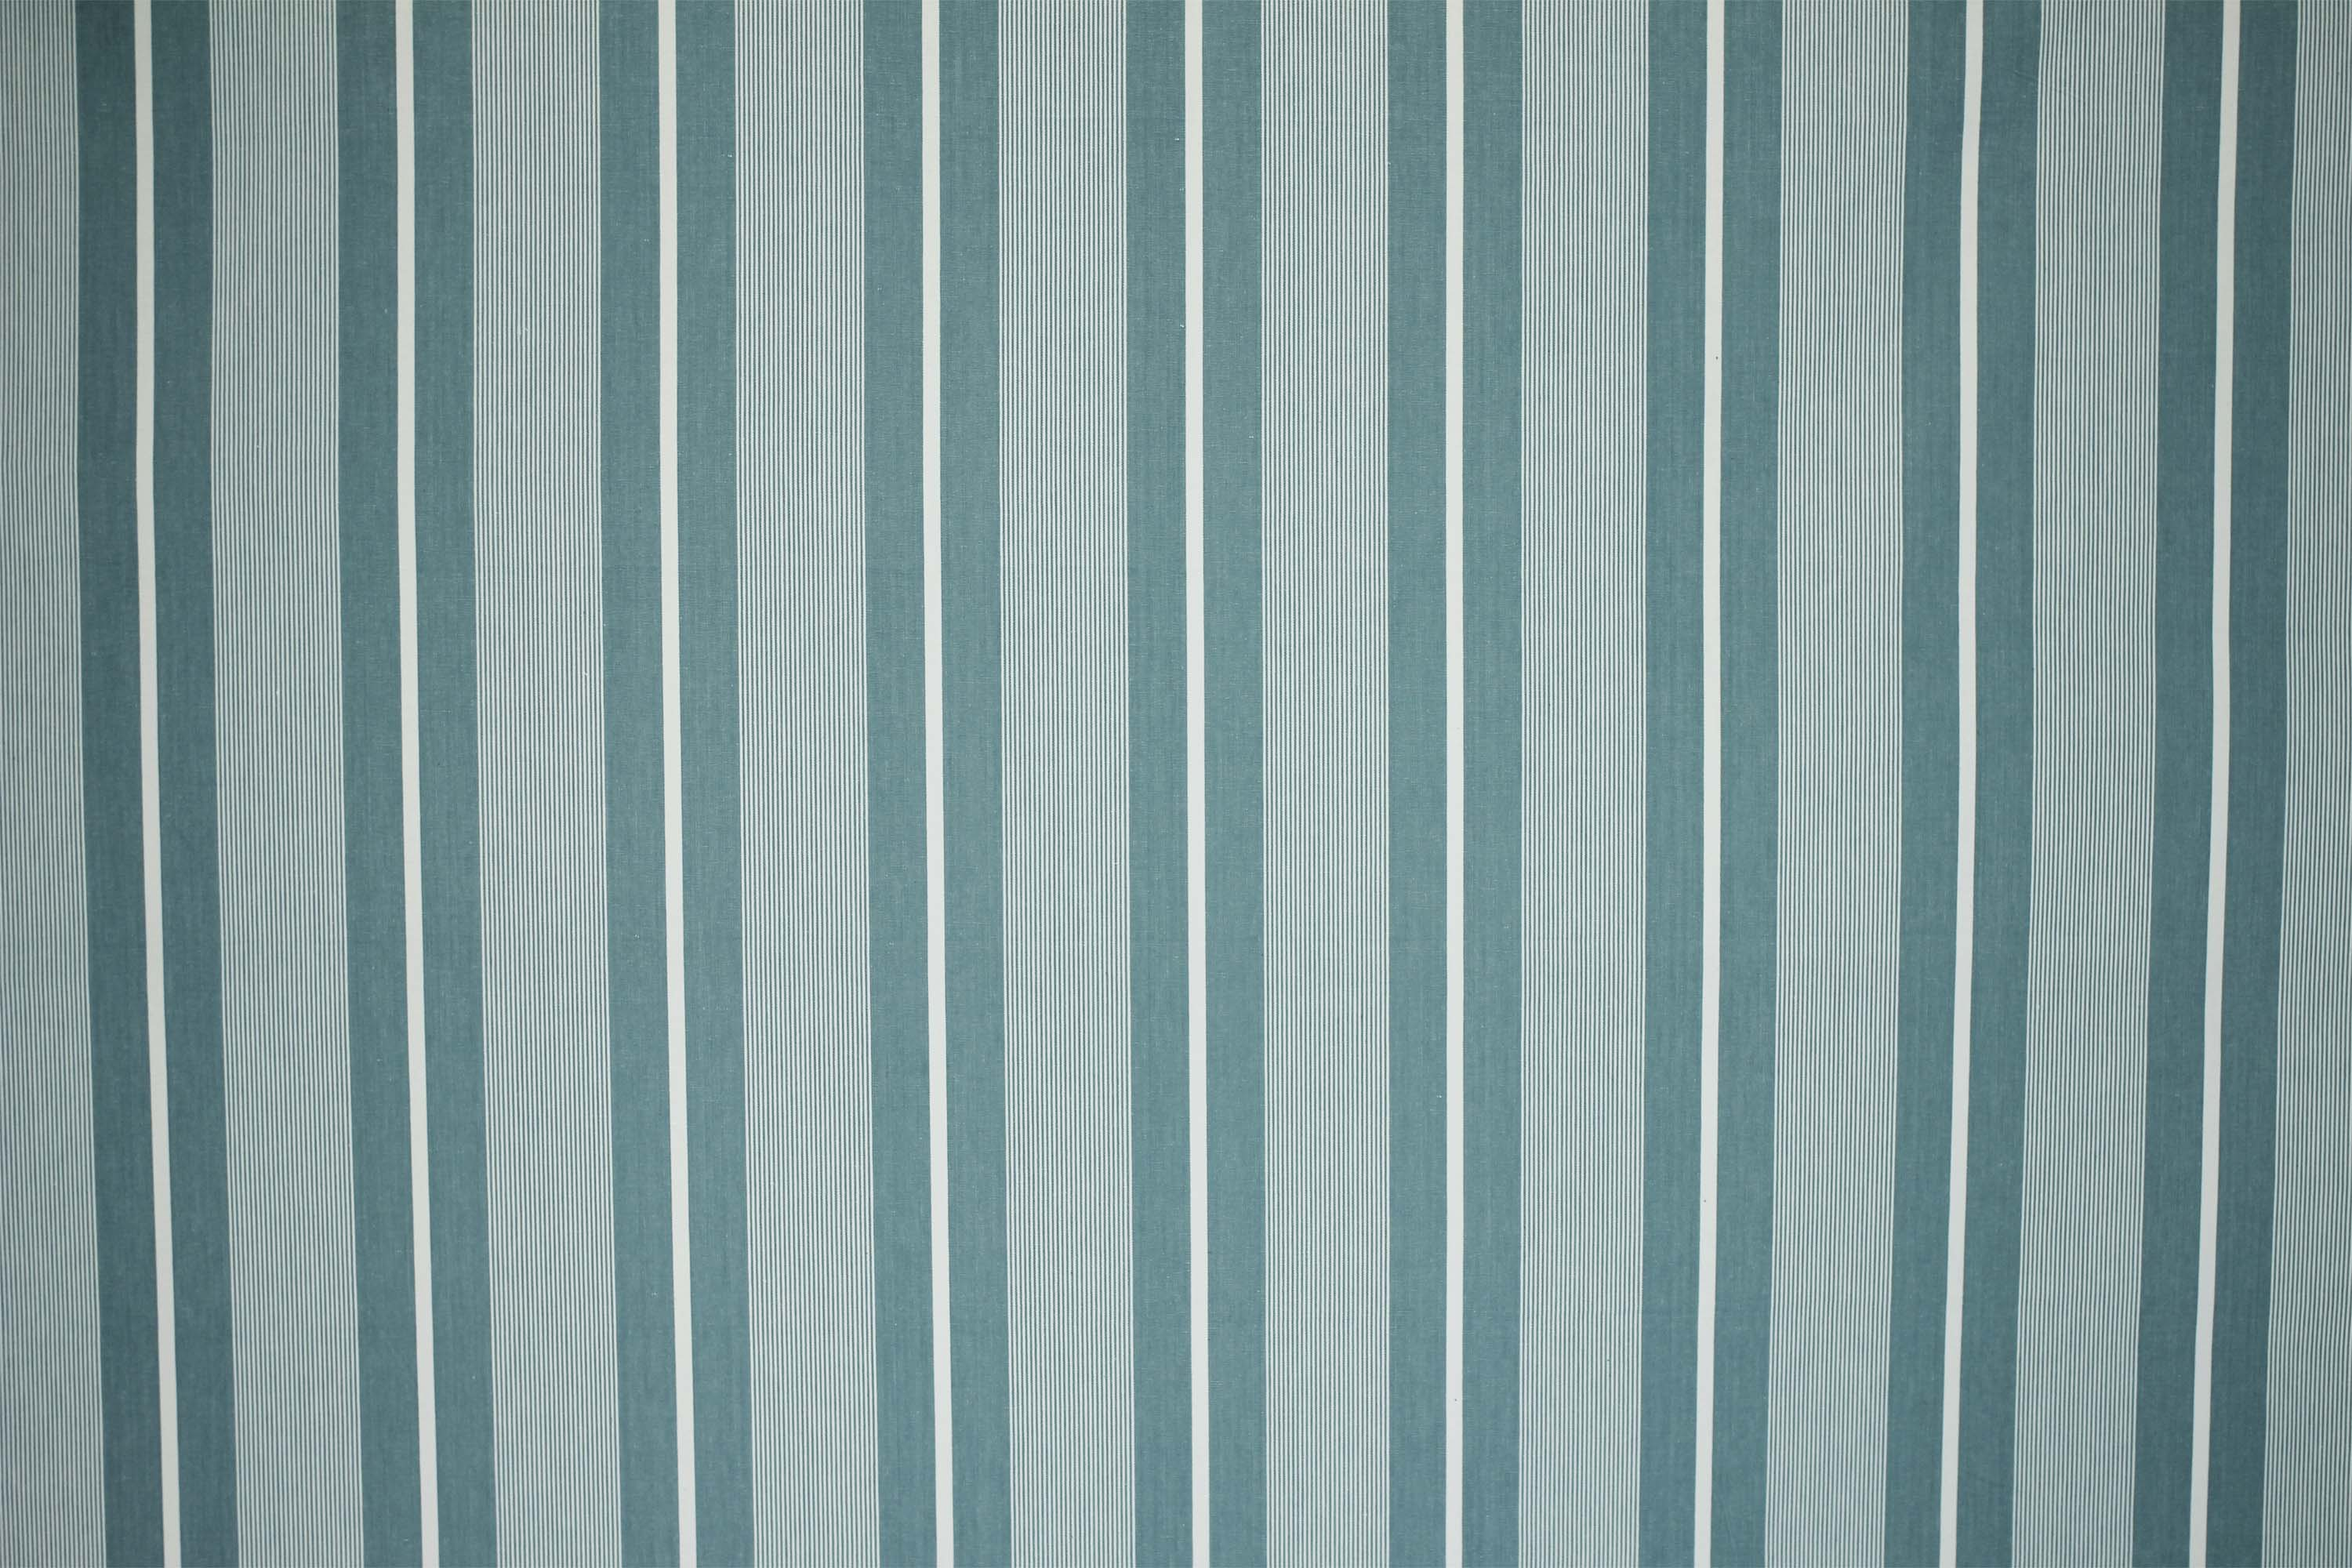 Sevens Teal Pale Striped Fabric